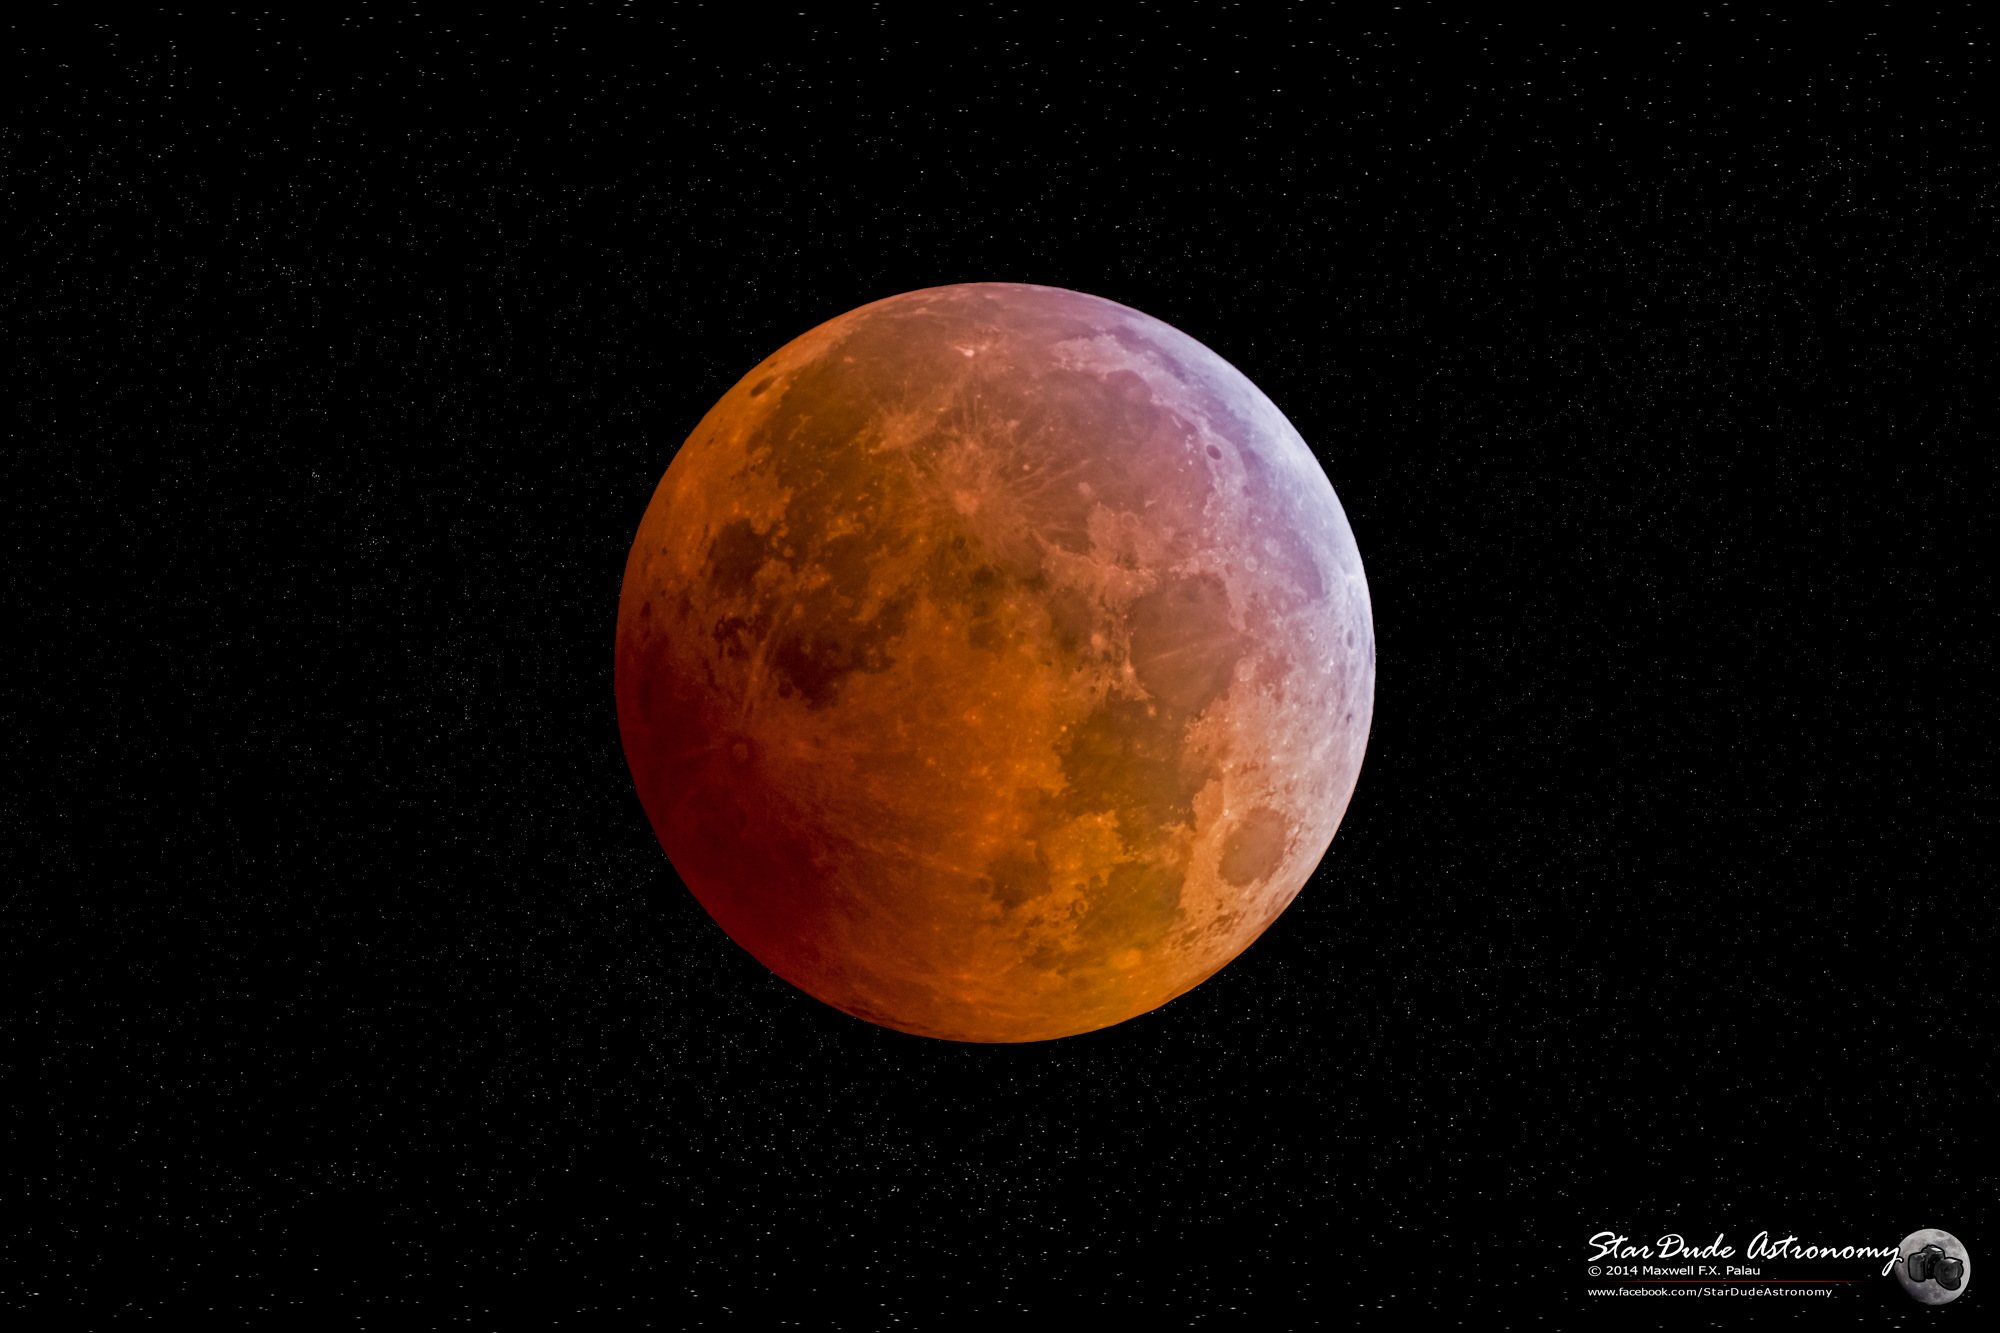 Supermoon Lunar Eclipse: How Science Explains the Epic Night Sky Event